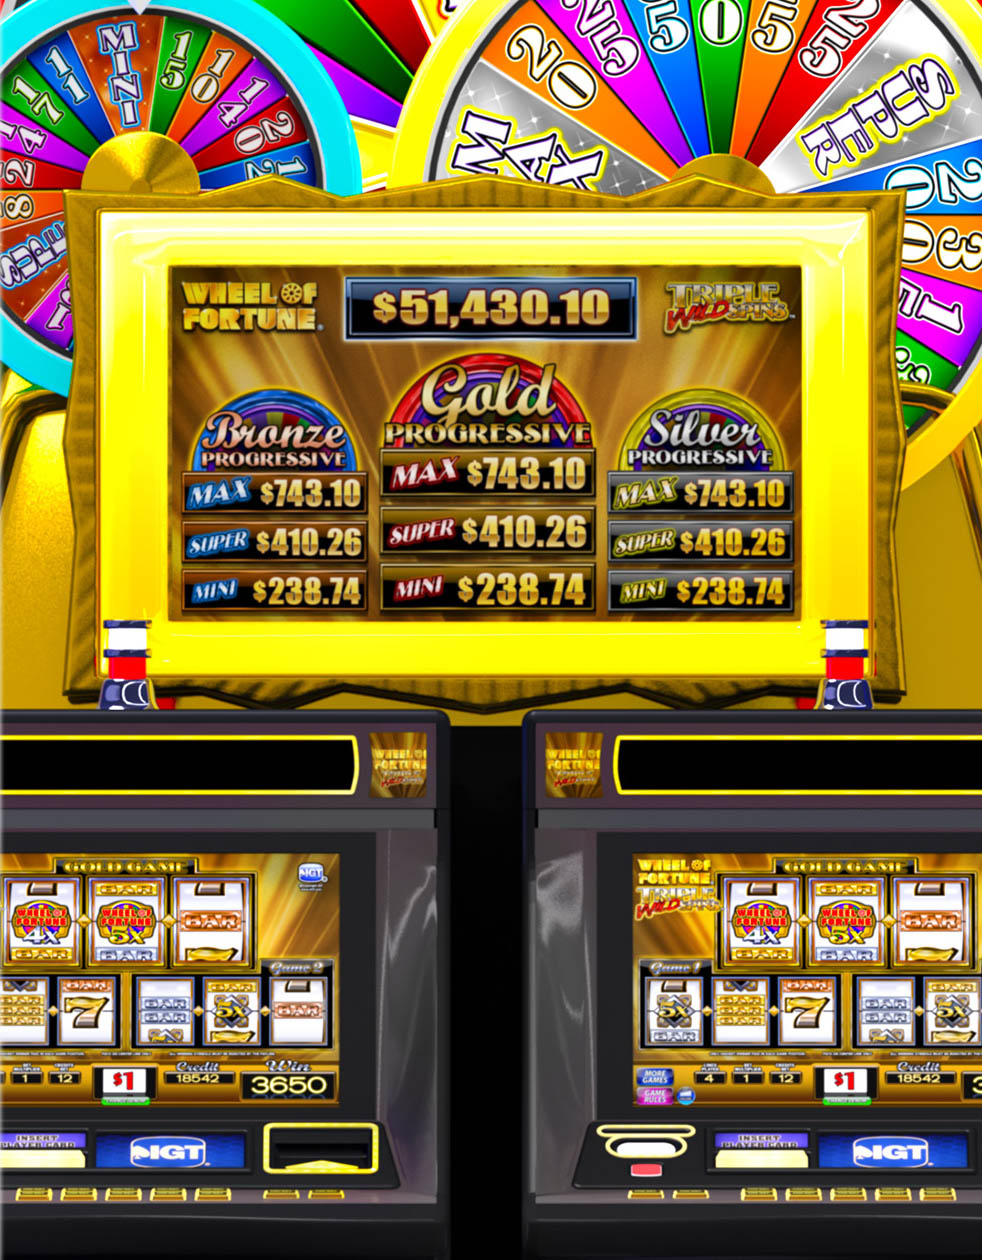 Wheel of Fortune Triple Extreme Mobile Free Slot Game - IOS / Android Version